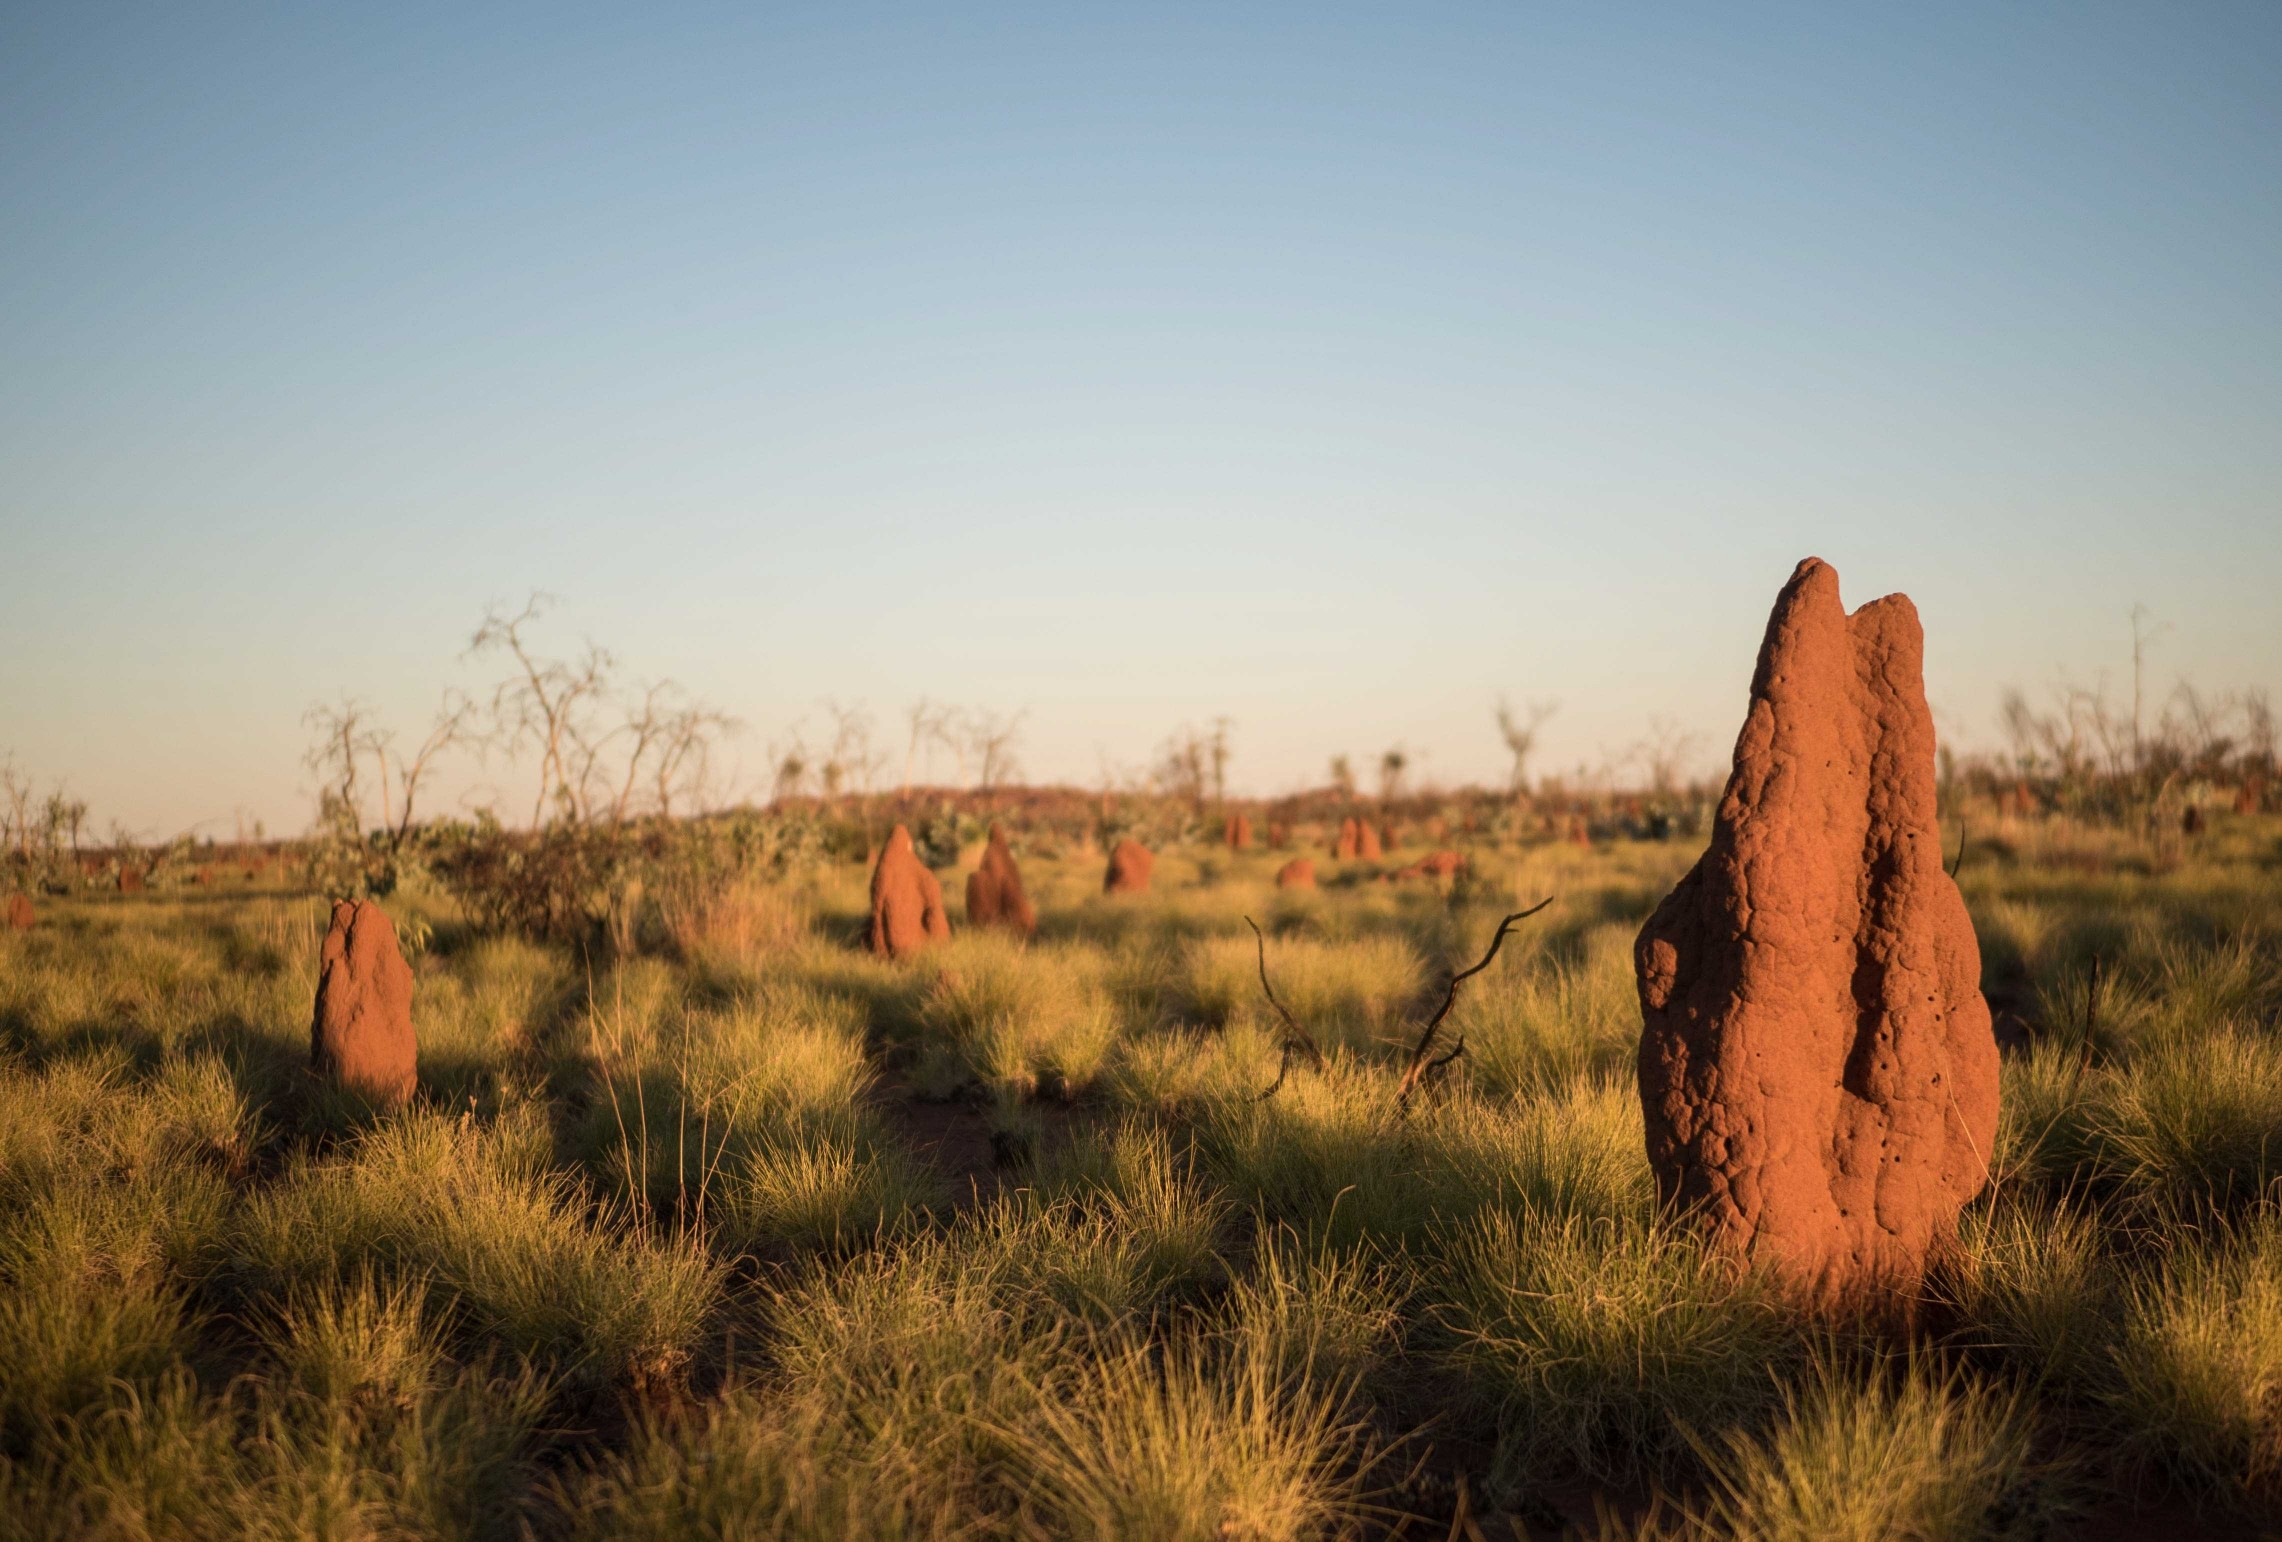 The Tanami Desert in Australia's Northern Territory. Credit: Ben Nichols @rockpoolphotography.